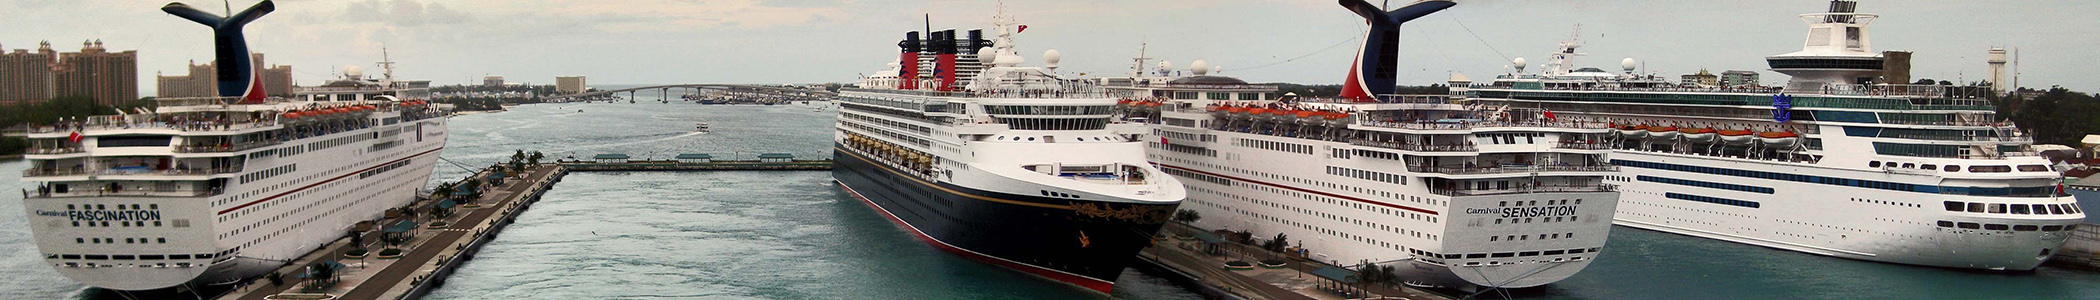 Cruise Ships Travel Guide At Wikivoyage - Example of cruise ship